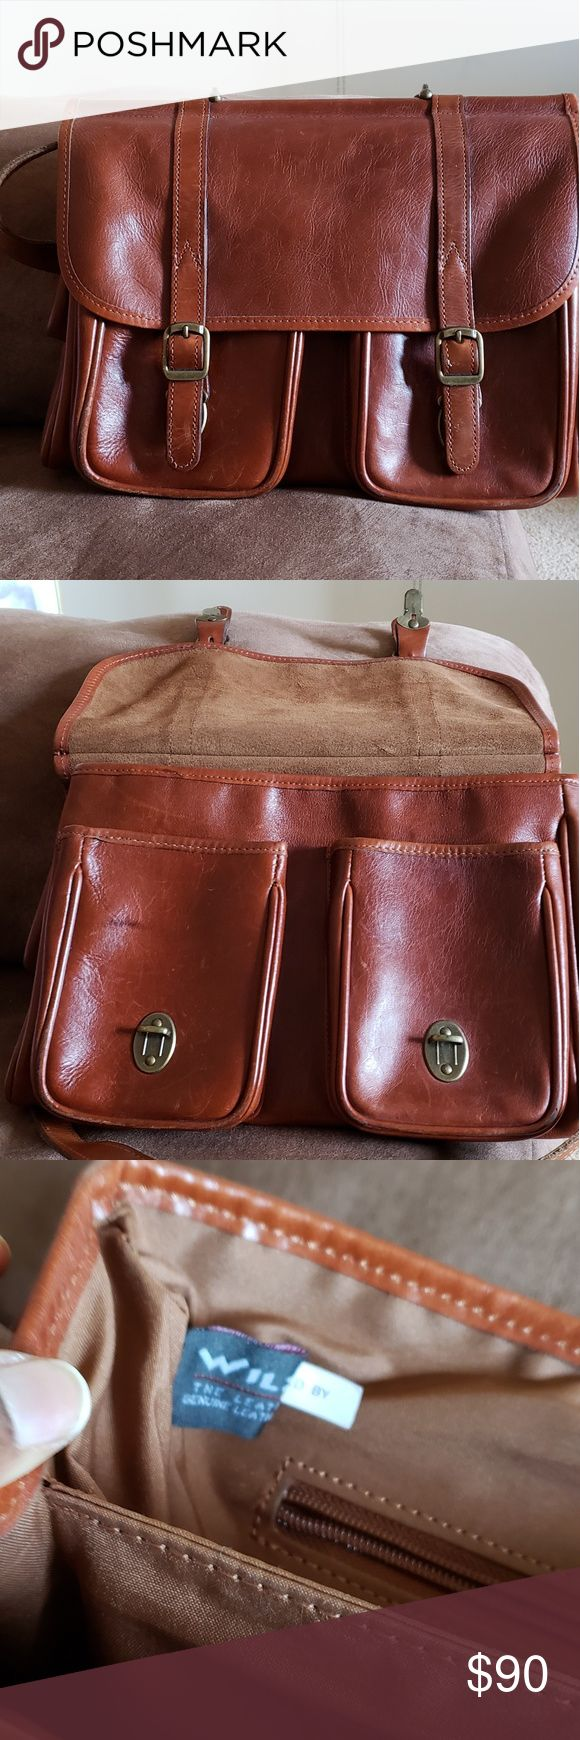 Wilson leather messenger bag Wilsons leather bag